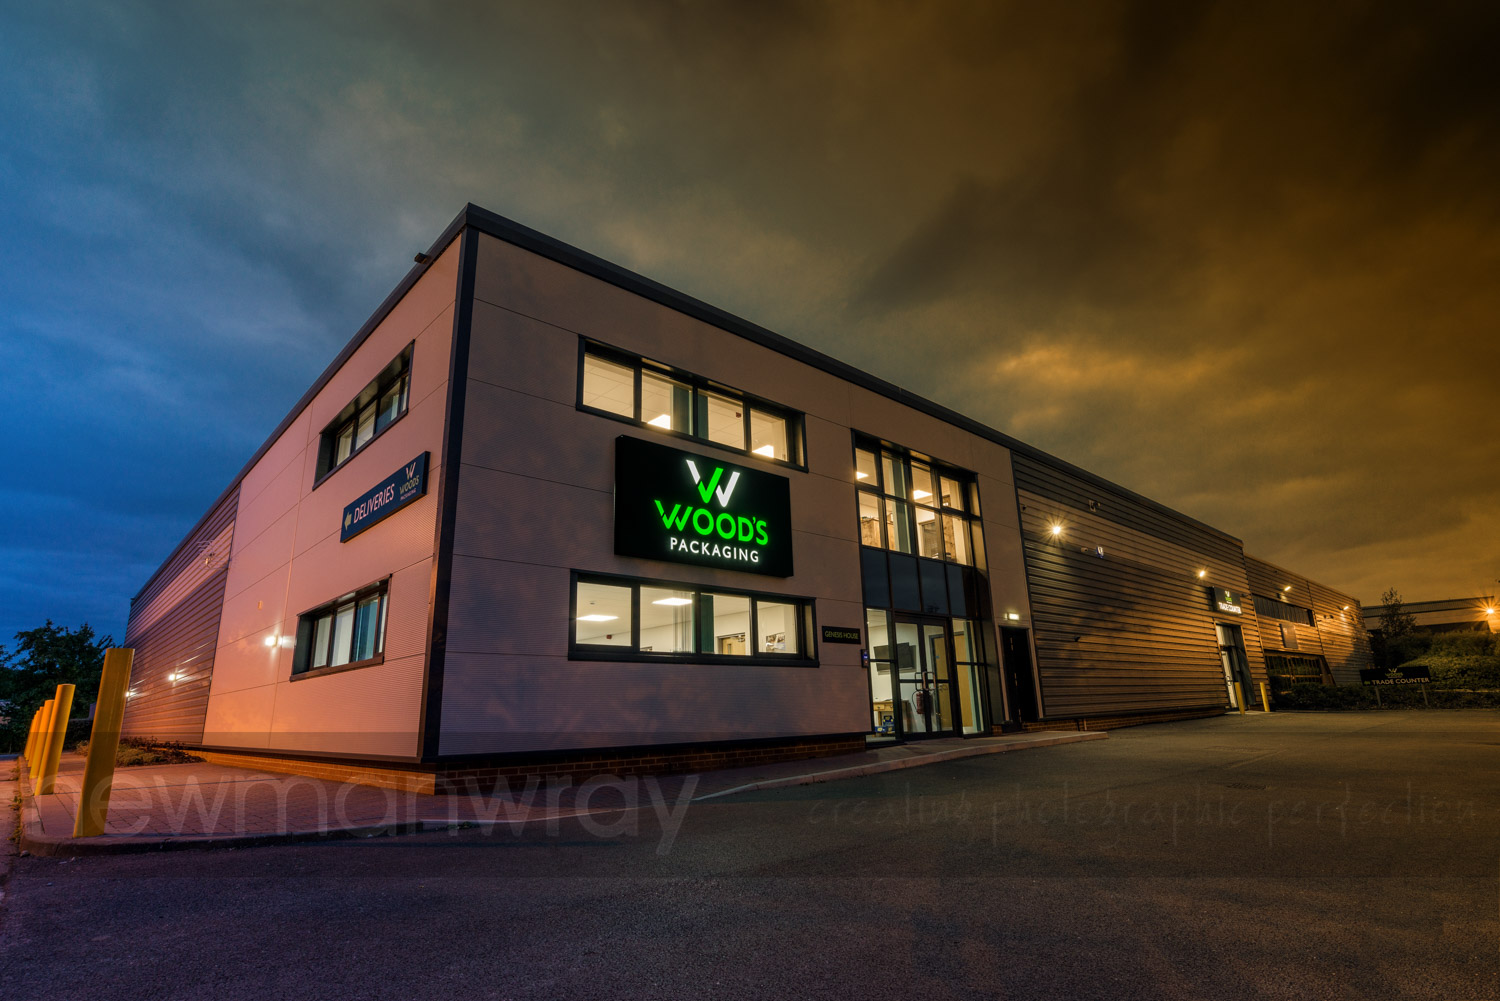 tadcaster_advertising_photography-1